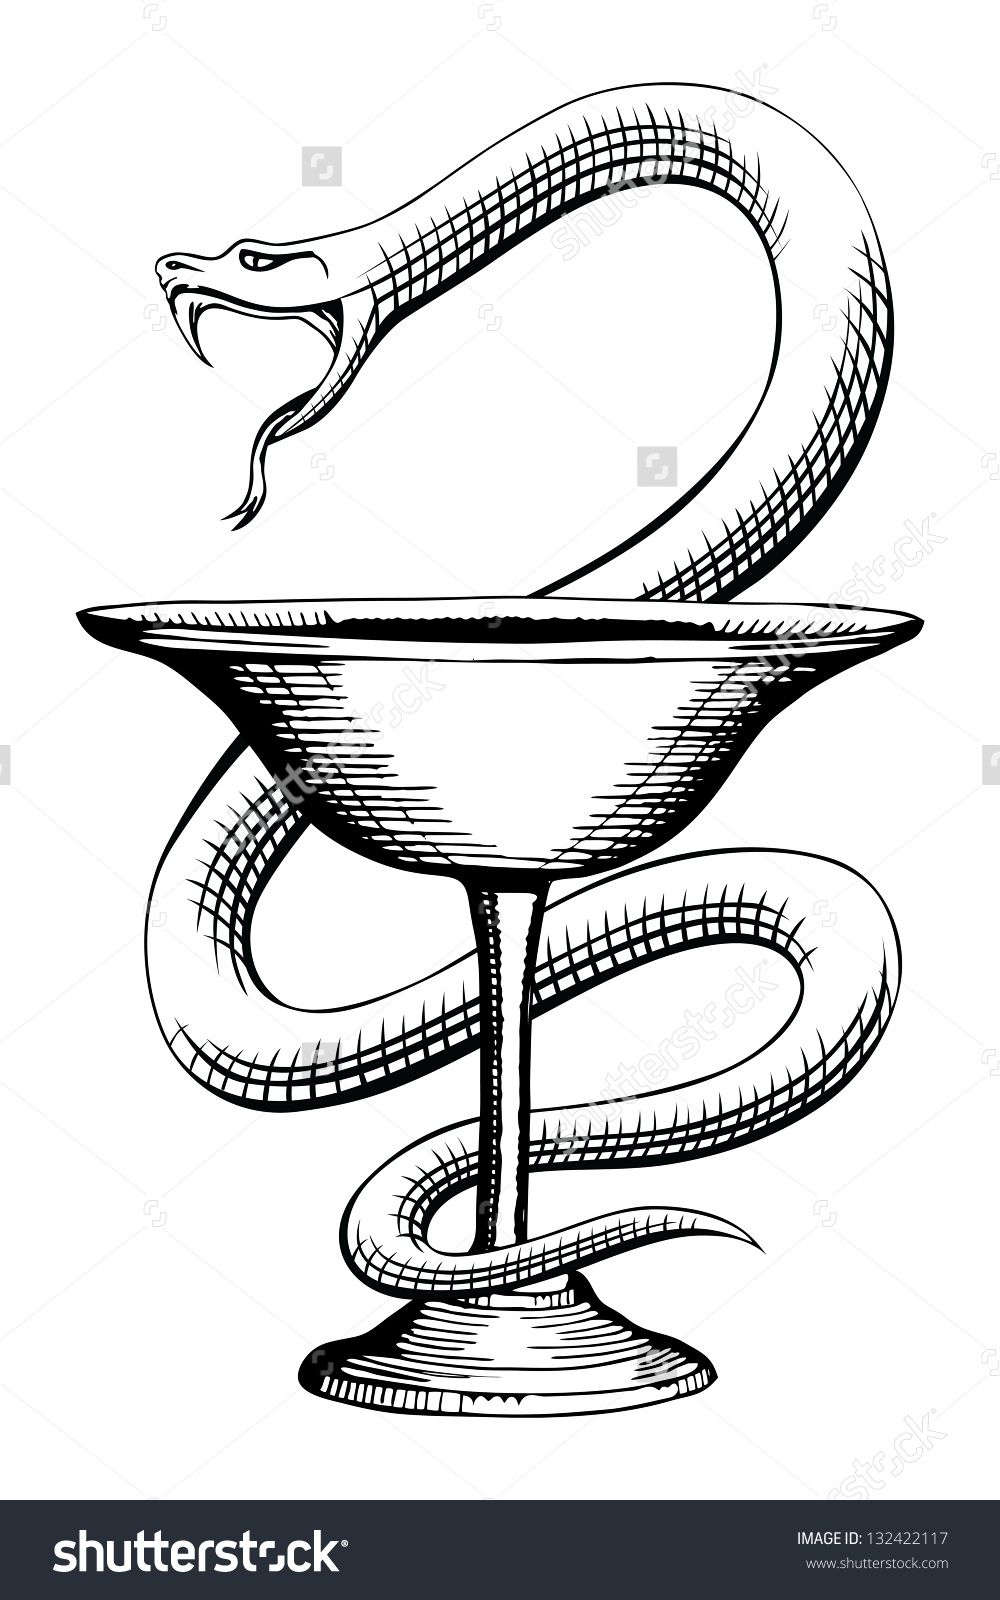 pharmacy snake and cup medical symbol is a vintage style